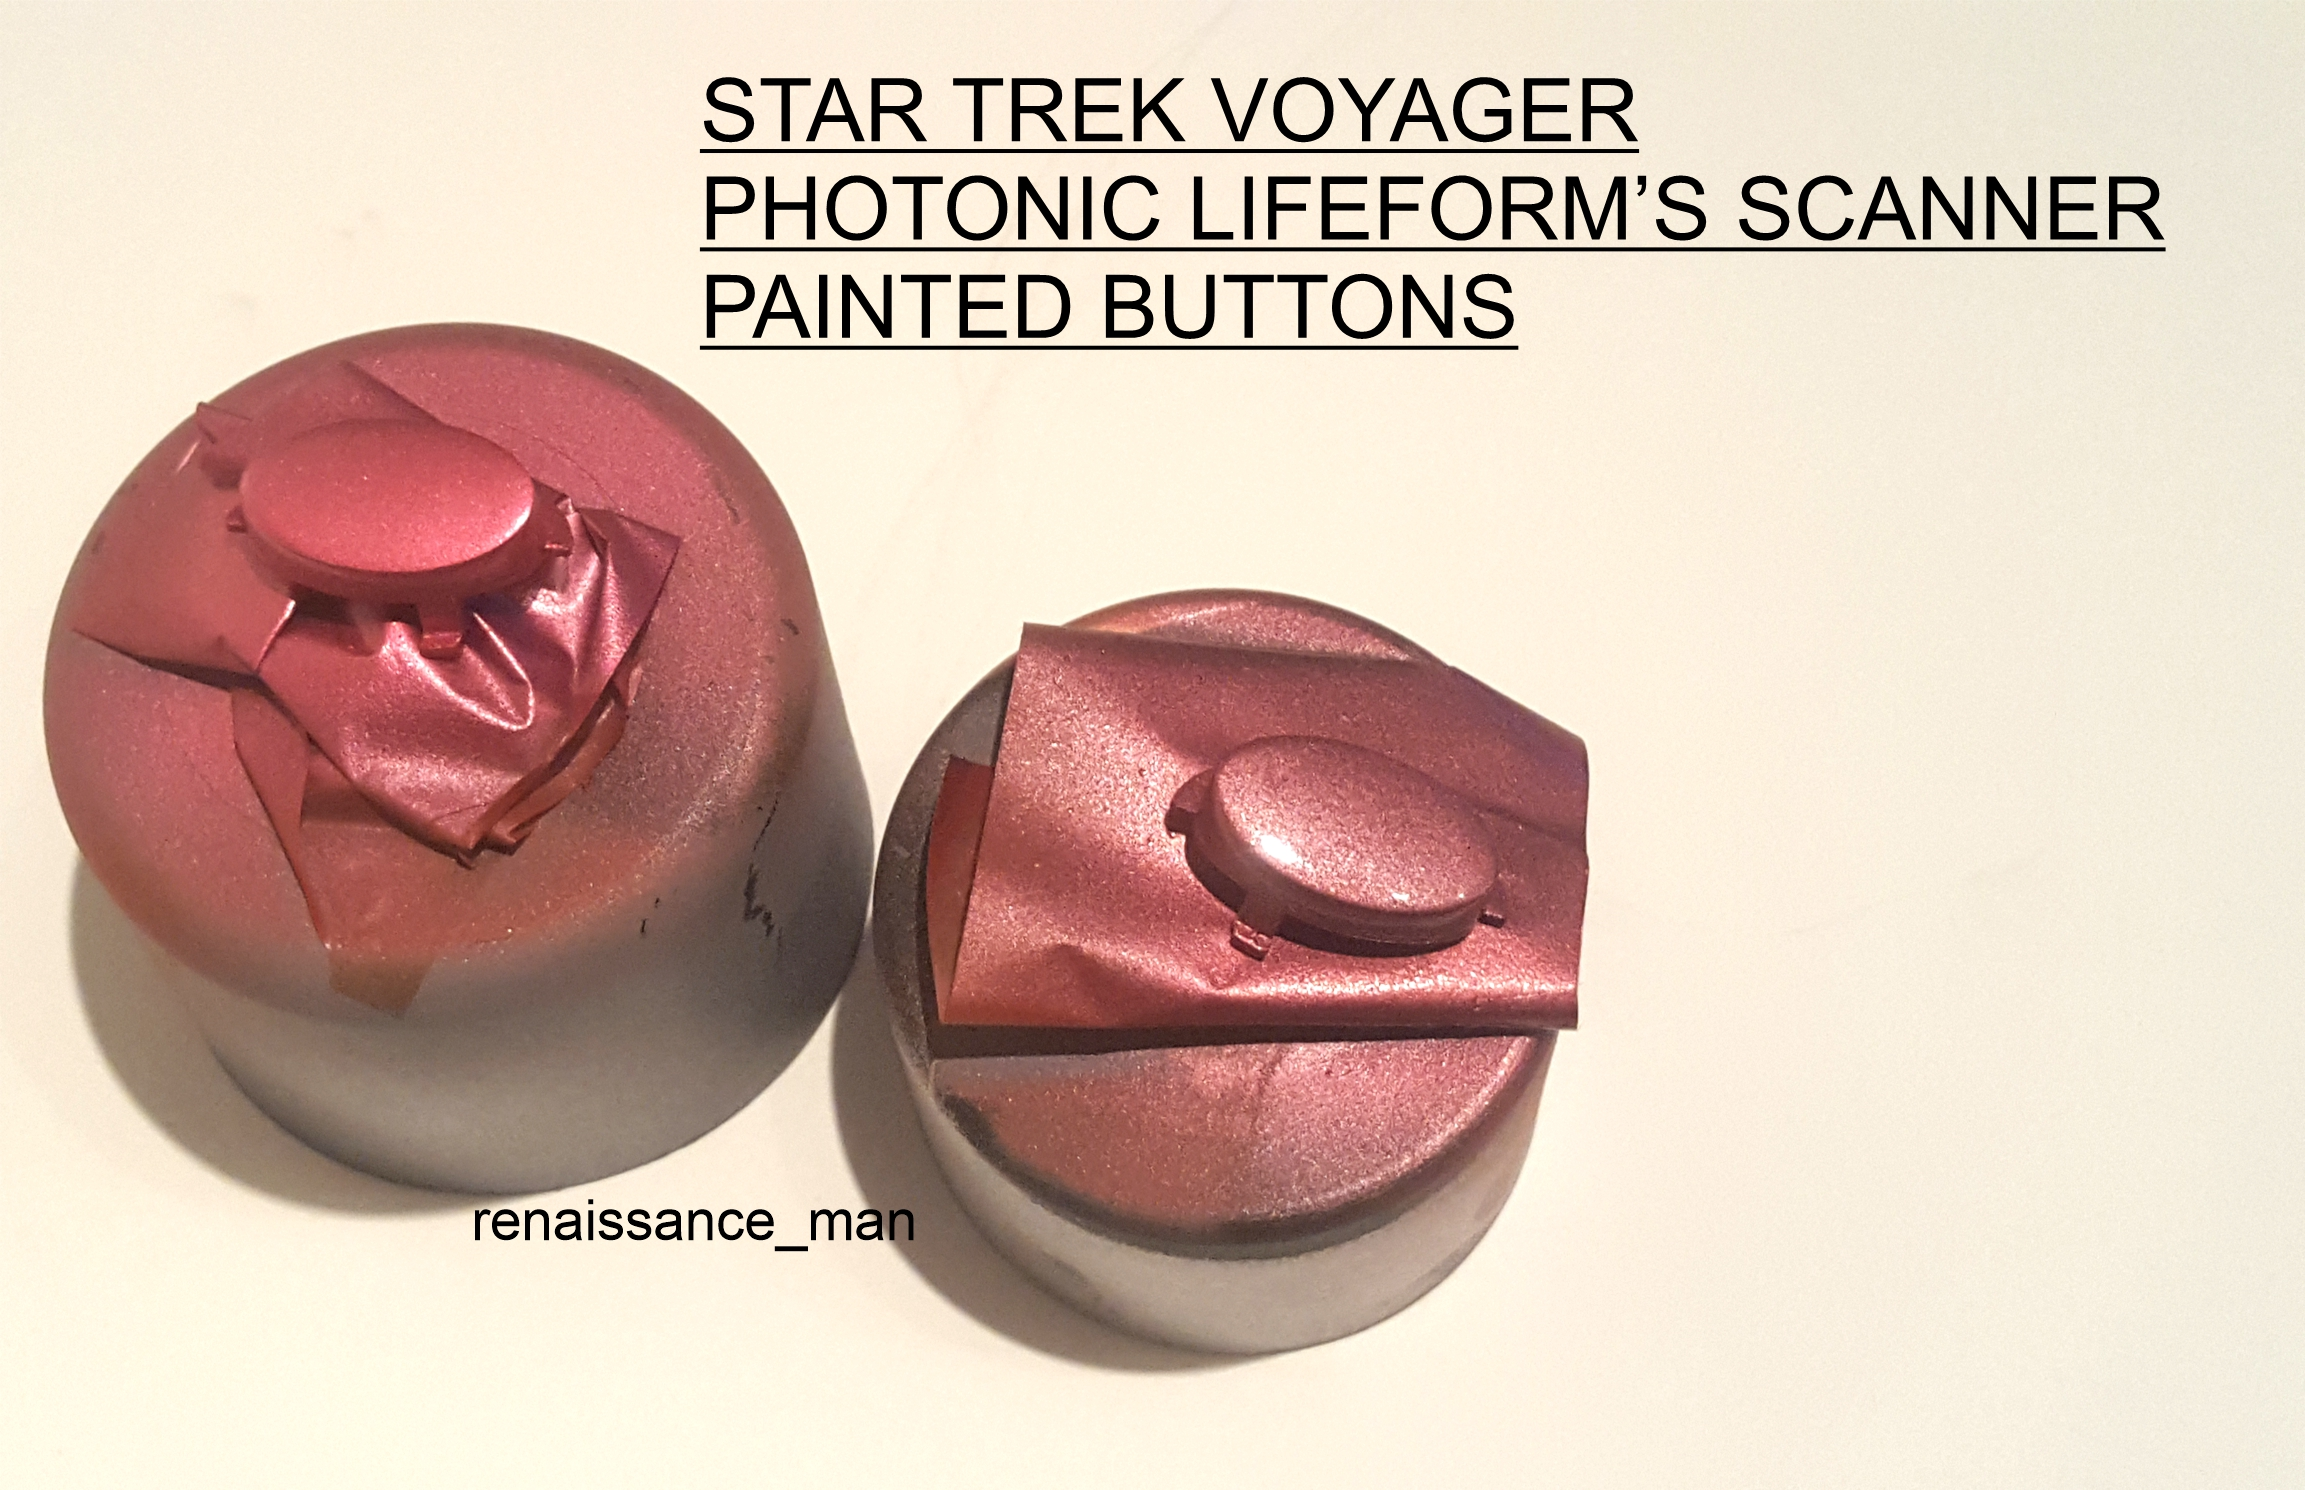 Voyager-Photonic-Scanner-buttons.jpg